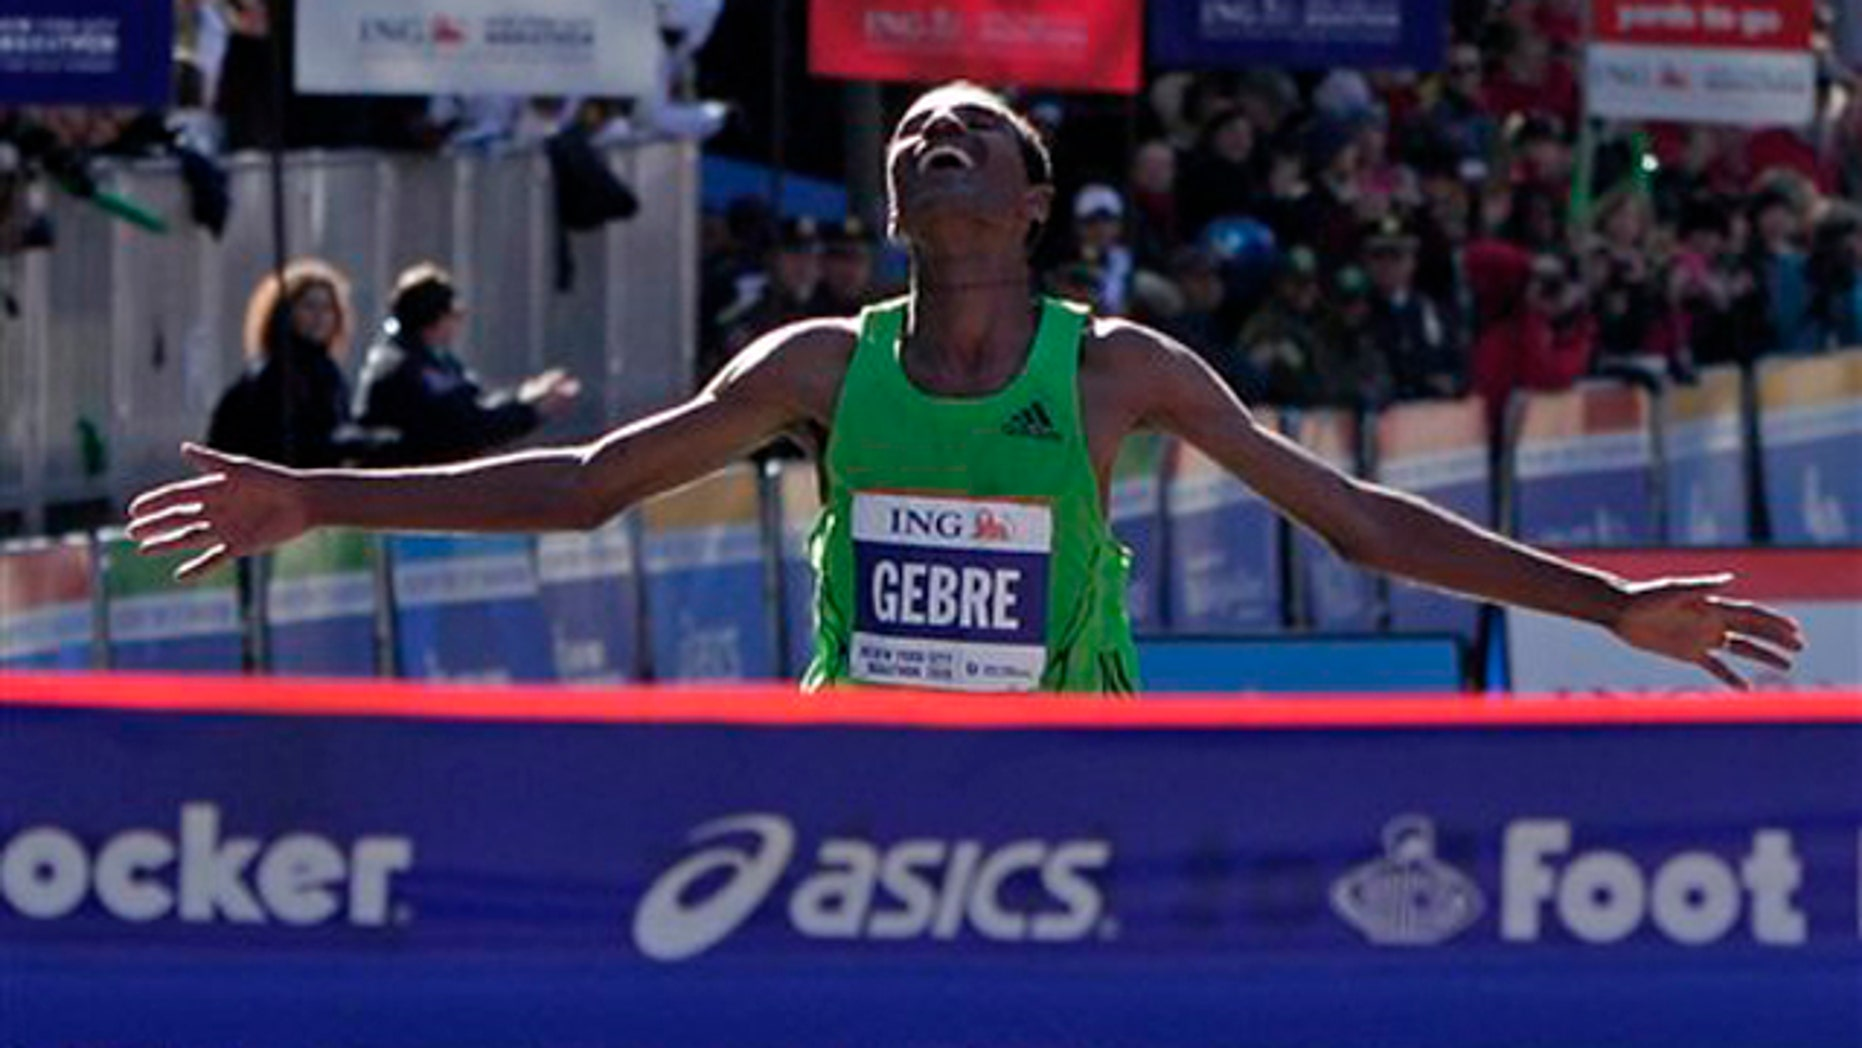 Gebre Gebrmariam, of Ethiopa, throws out his arms before breaking the tape to win the professional men's division at the New York City Marathon in New York, Sunday, Nov. 7, 2010.